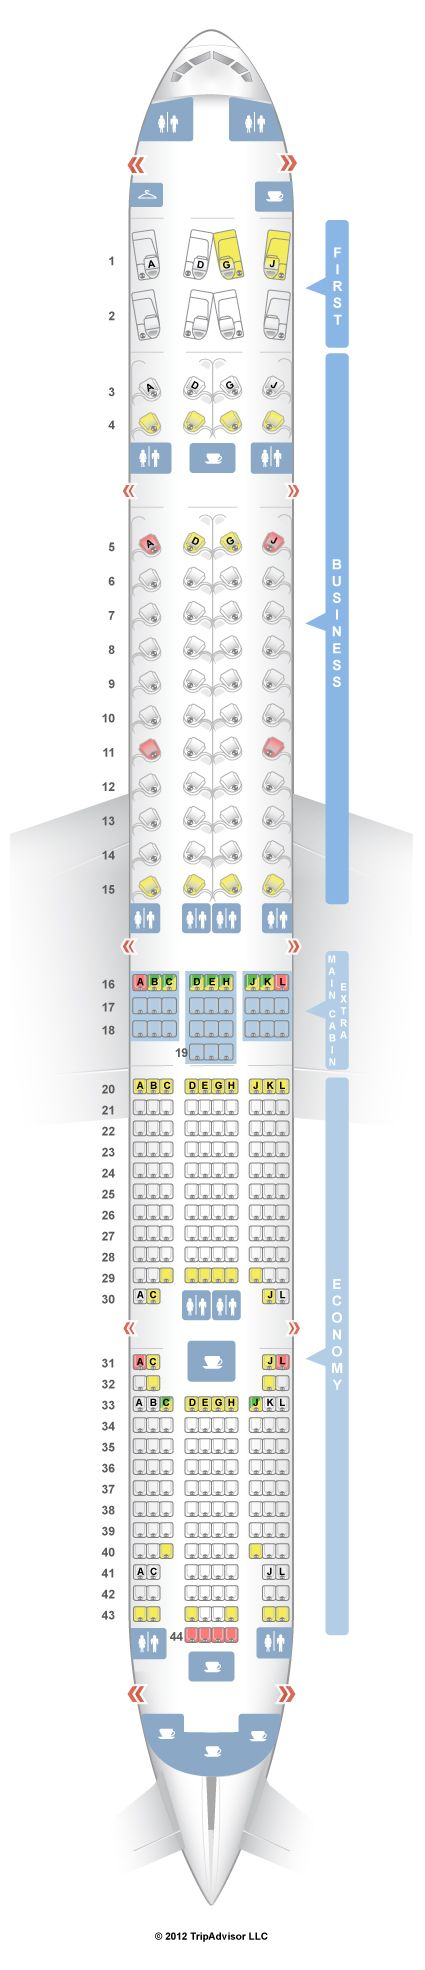 Seatguru Seat Map American Airlines Boeing 777 300er 77w With